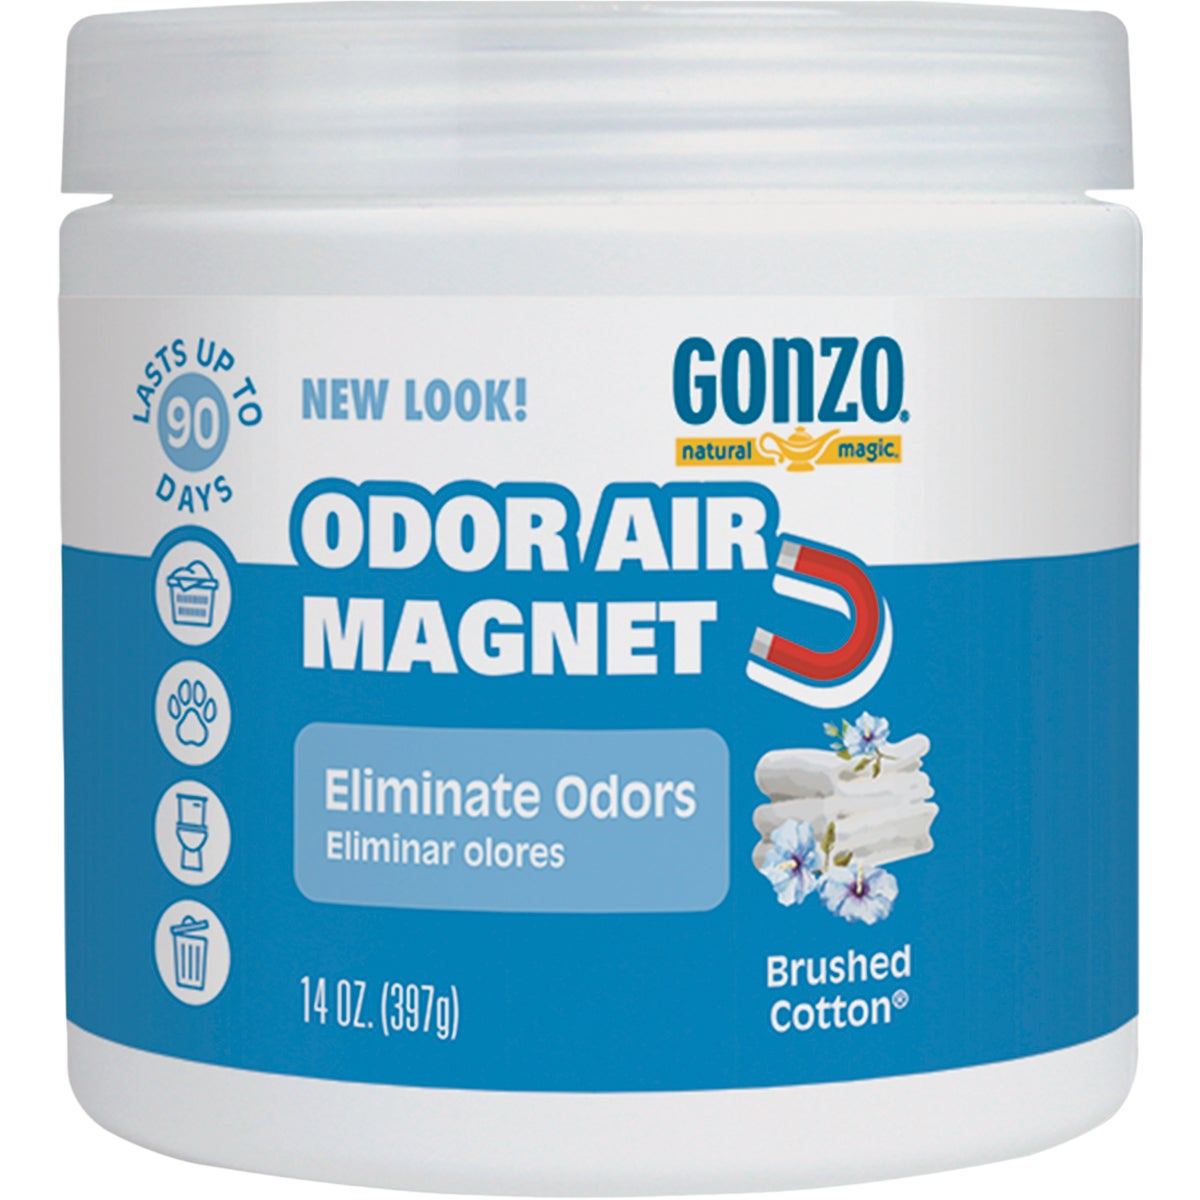 COTTON ODOR ABSORB GEL - 9063 by Magic Ntrl Magic Sci